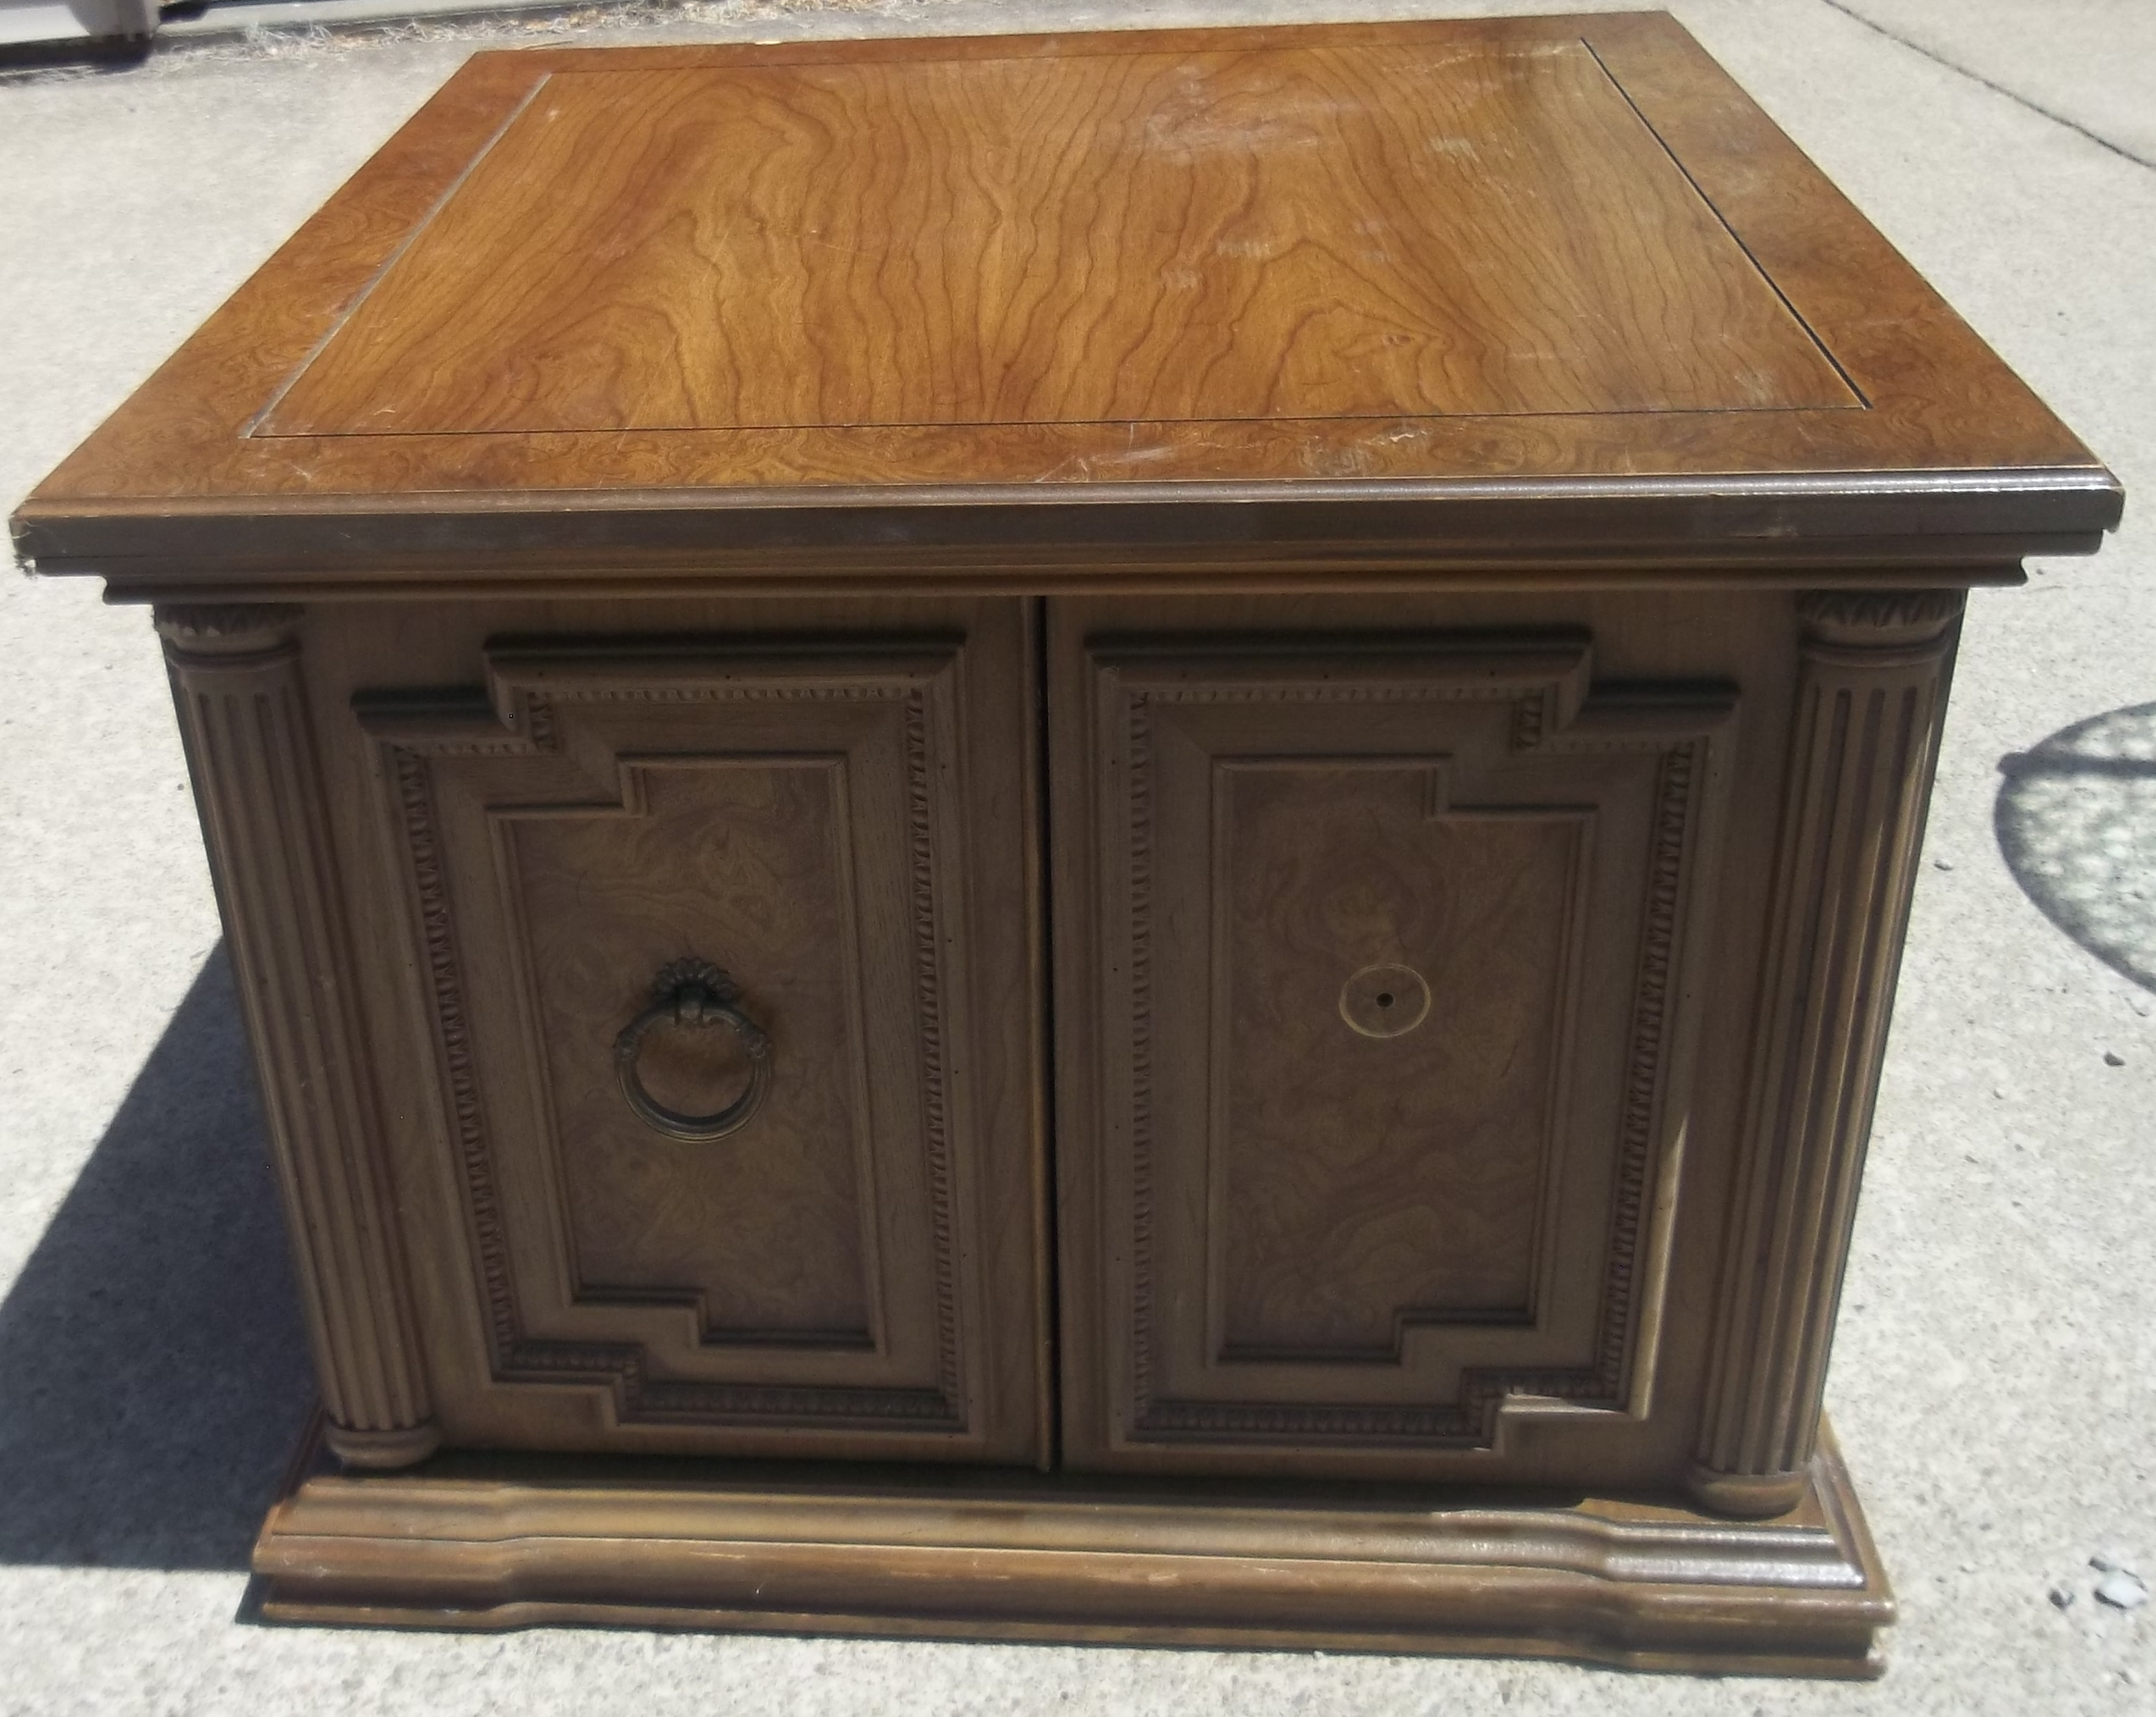 vintage living room end tables with storage design broken pulls furniture interior for awesome family decorating table drawer and door leonard hackett has subscribed credited from